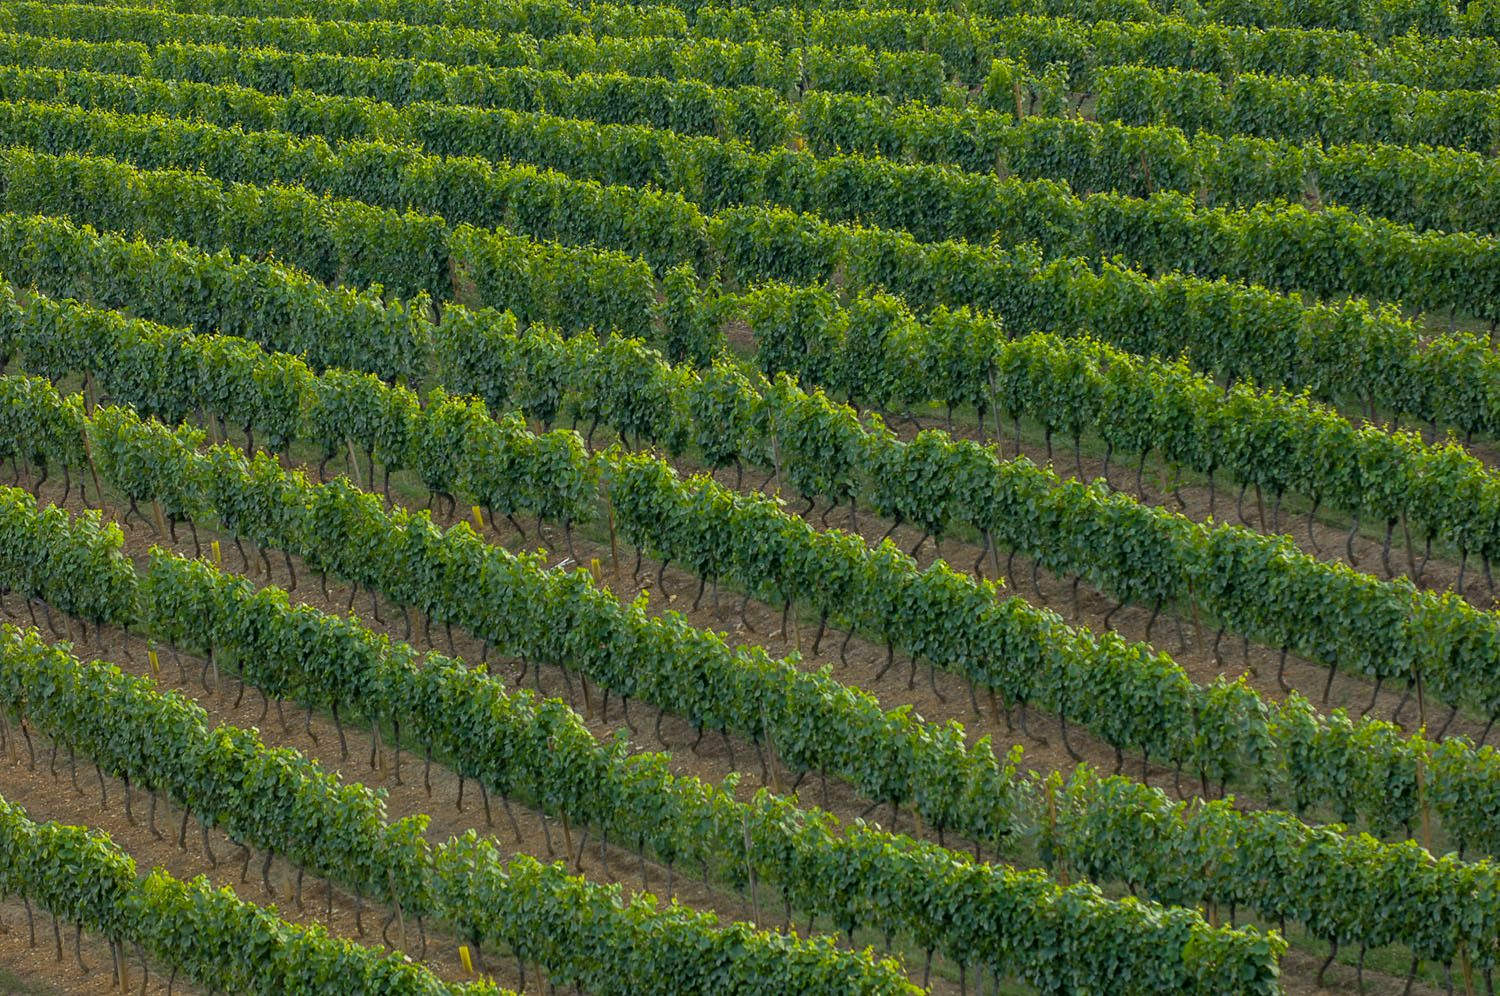 Fields of grape vines for wine, Cote d'Or, France